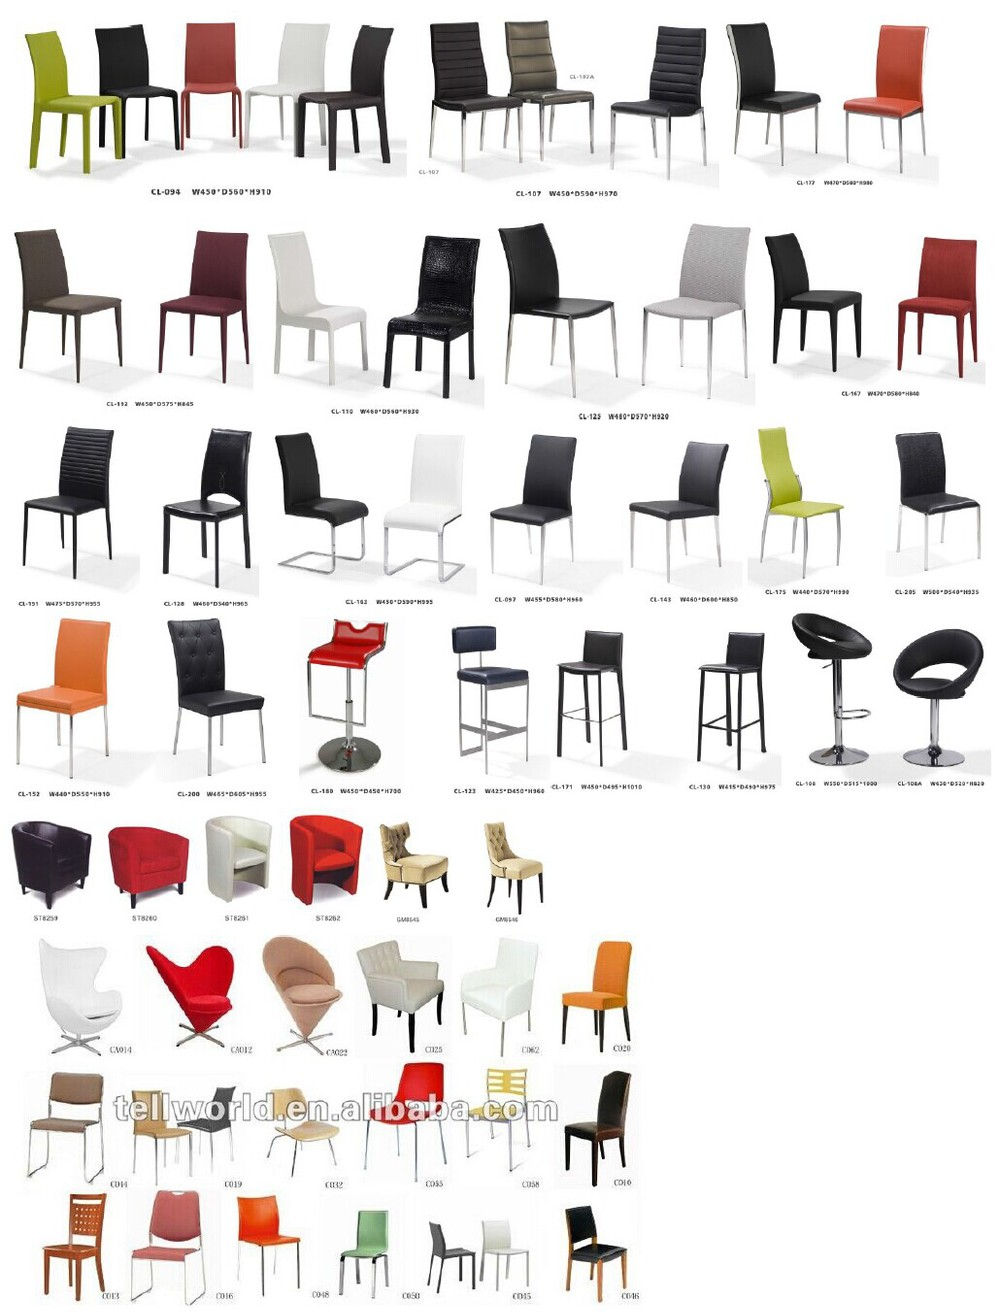 Restaurant tables and chairs clipart - 2013 Hot Sale Starbucks Furniture Cafe Table Restaurant Table Fast Food Furniture And Chair